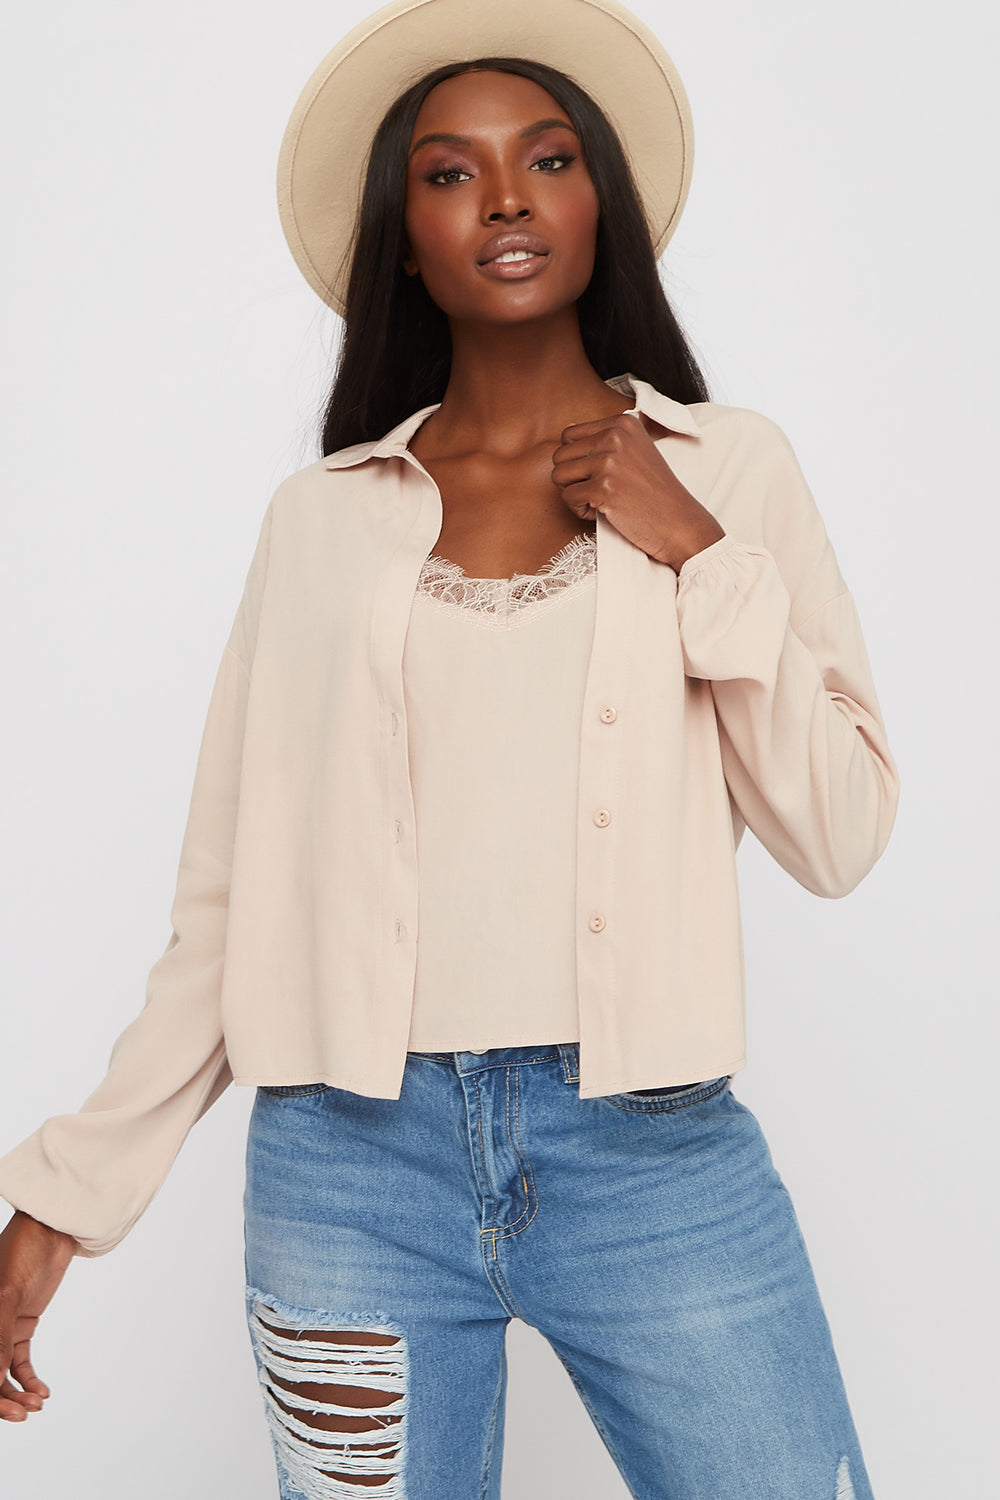 Lace Camisole and Button-Up Shirt Beige